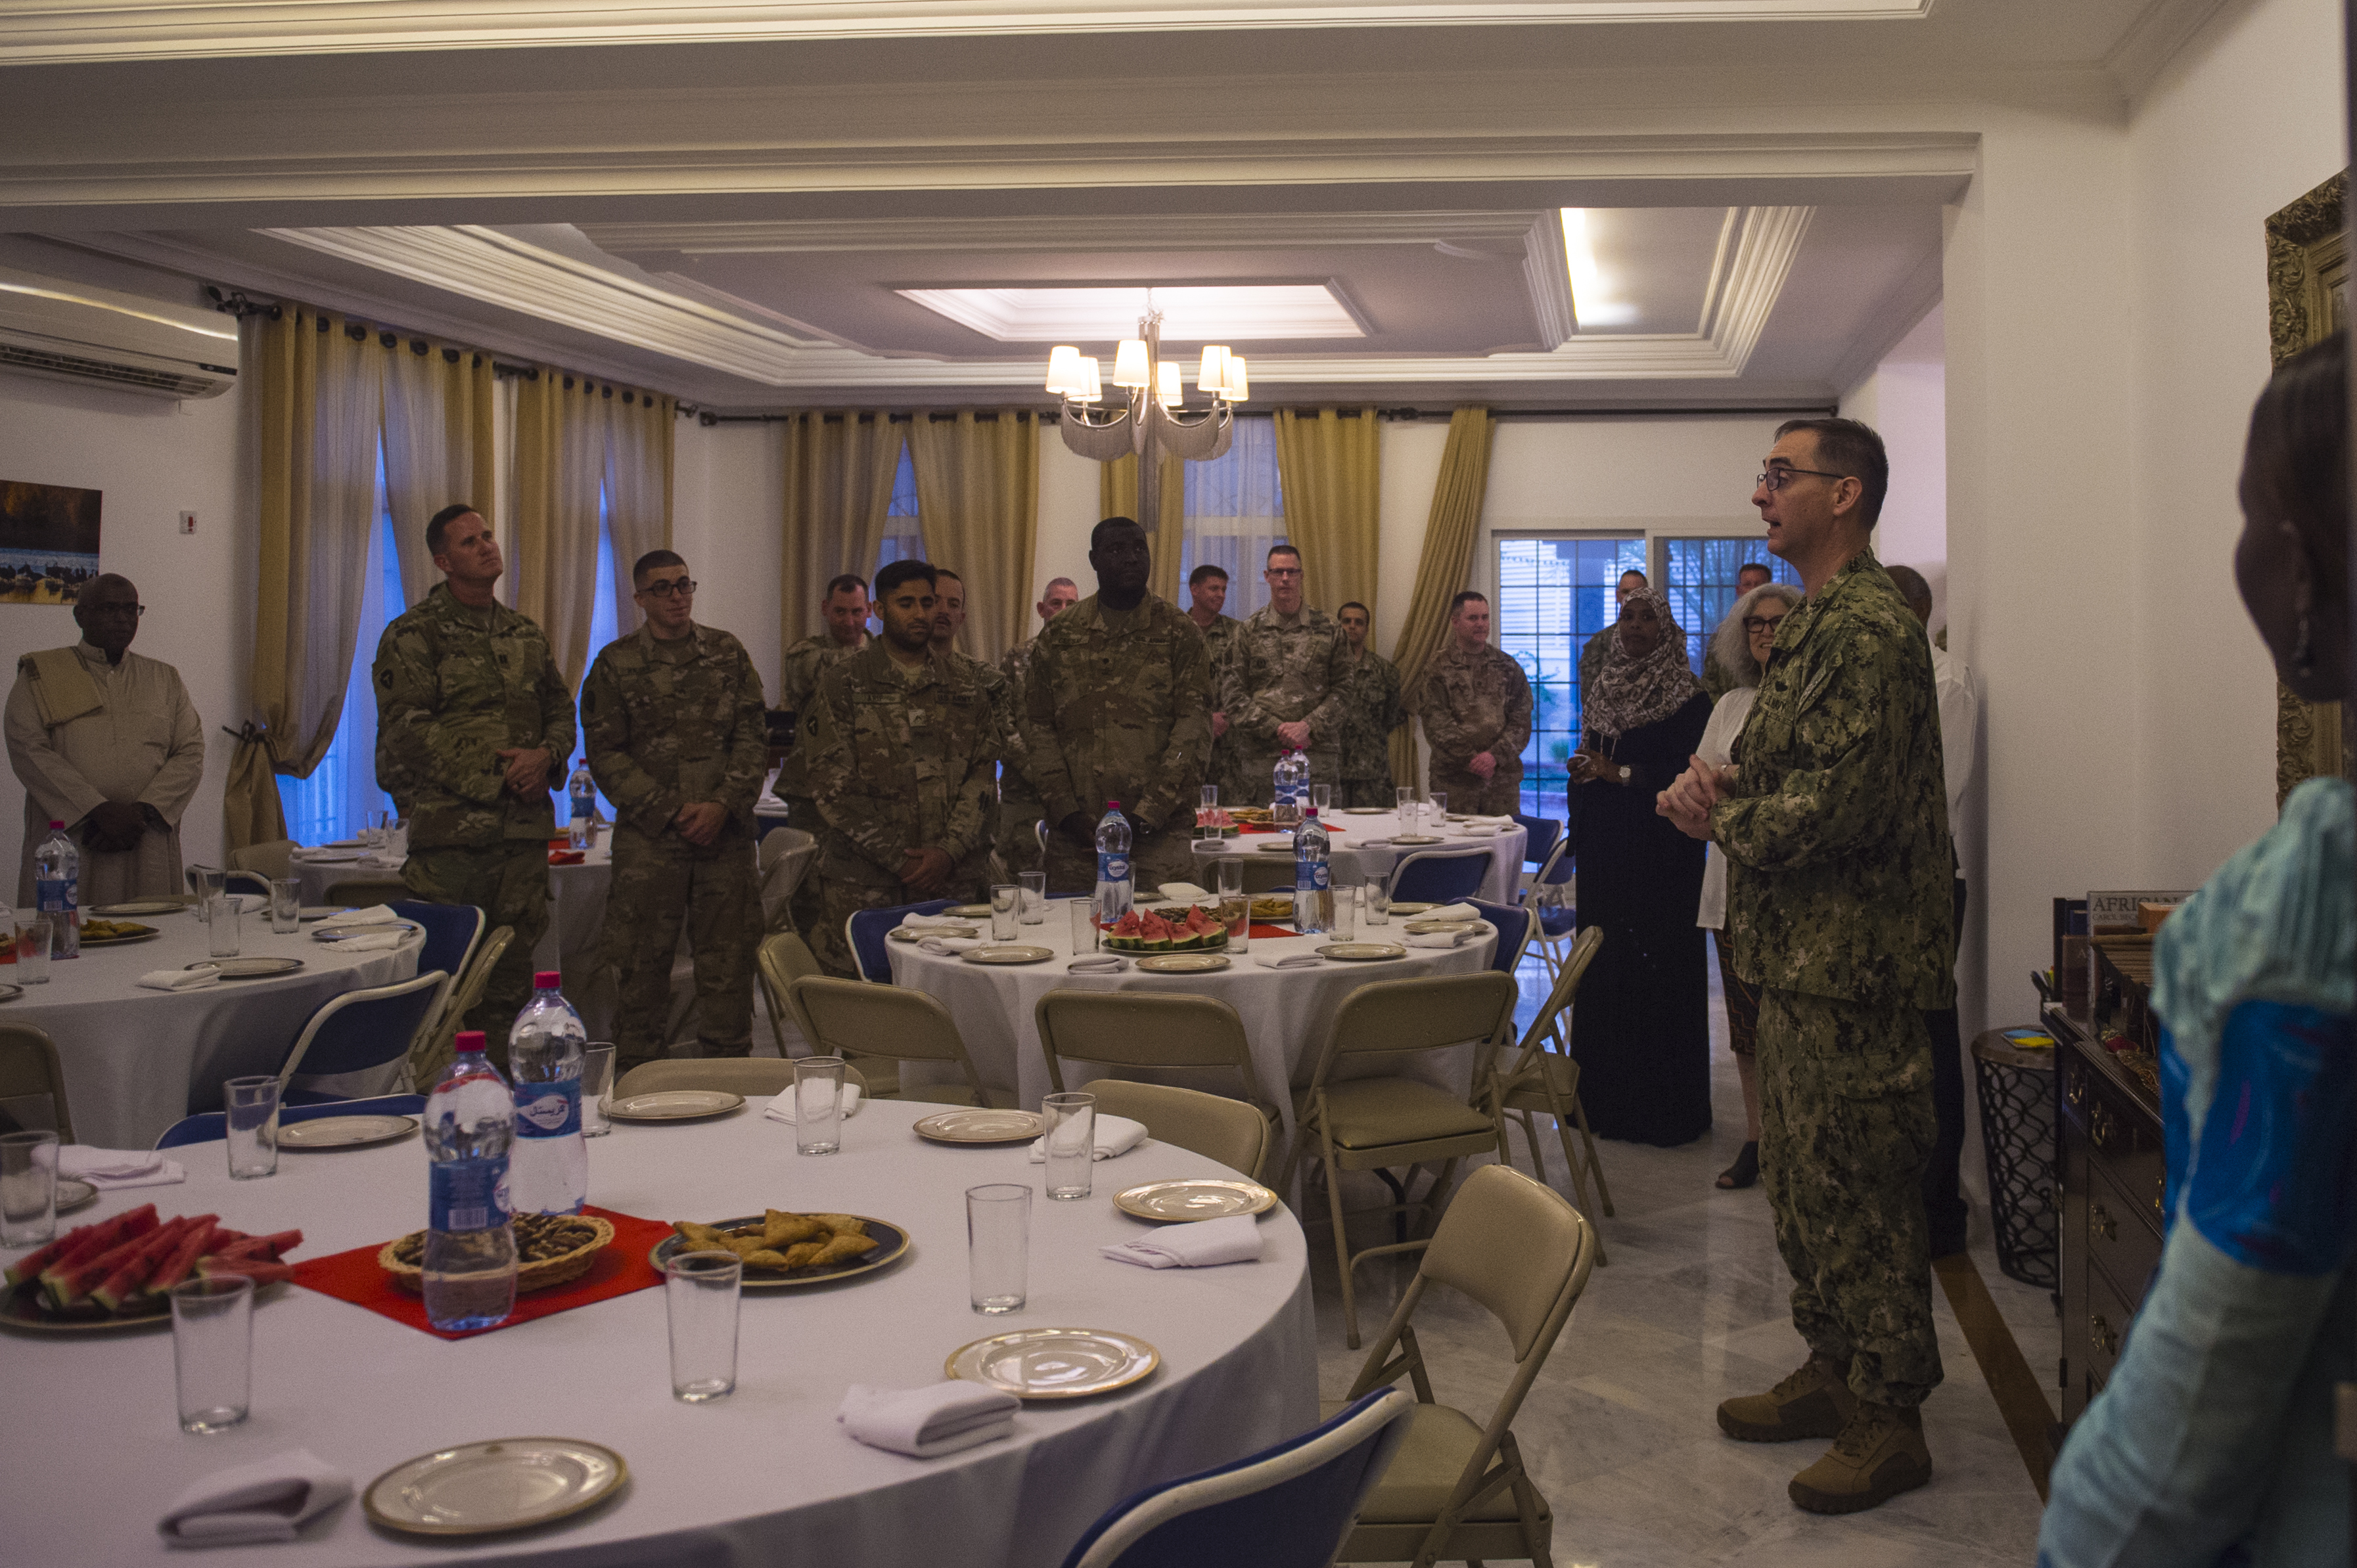 U.S. Navy Capt. John Tully, U.S. Embassy to the Republic of Djibouti Senior Defense Official and Defense Attaché, talks to visitors of the Iftar at the U.S. Ambassador to the Republic of Djibouti, Larry André's house in Djibouti, May 22, 2018. André opened his home to celebrate two Iftars, one run by the Defense Attaché Office for senior Diboutian Military and security leaders, the second for senior government, diplomatic, and business leaders.. (U.S. Air Force photo by Senior Airman Scott Jackson)